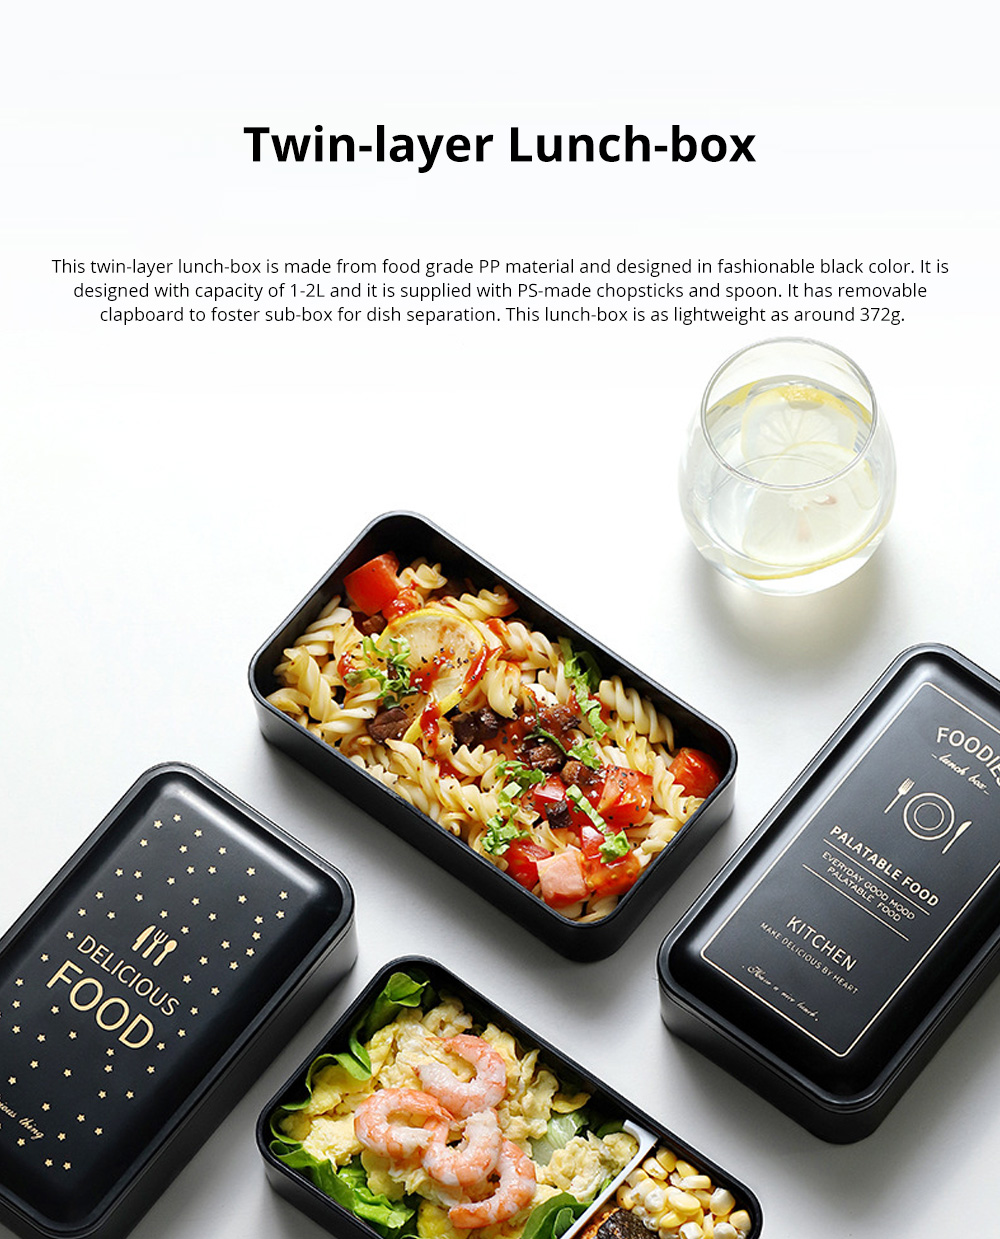 Twin-layer Lunch-box for Commuters Students Twin-layer Microwave Stove Heating Bento Box Large Size Lunch-box 0